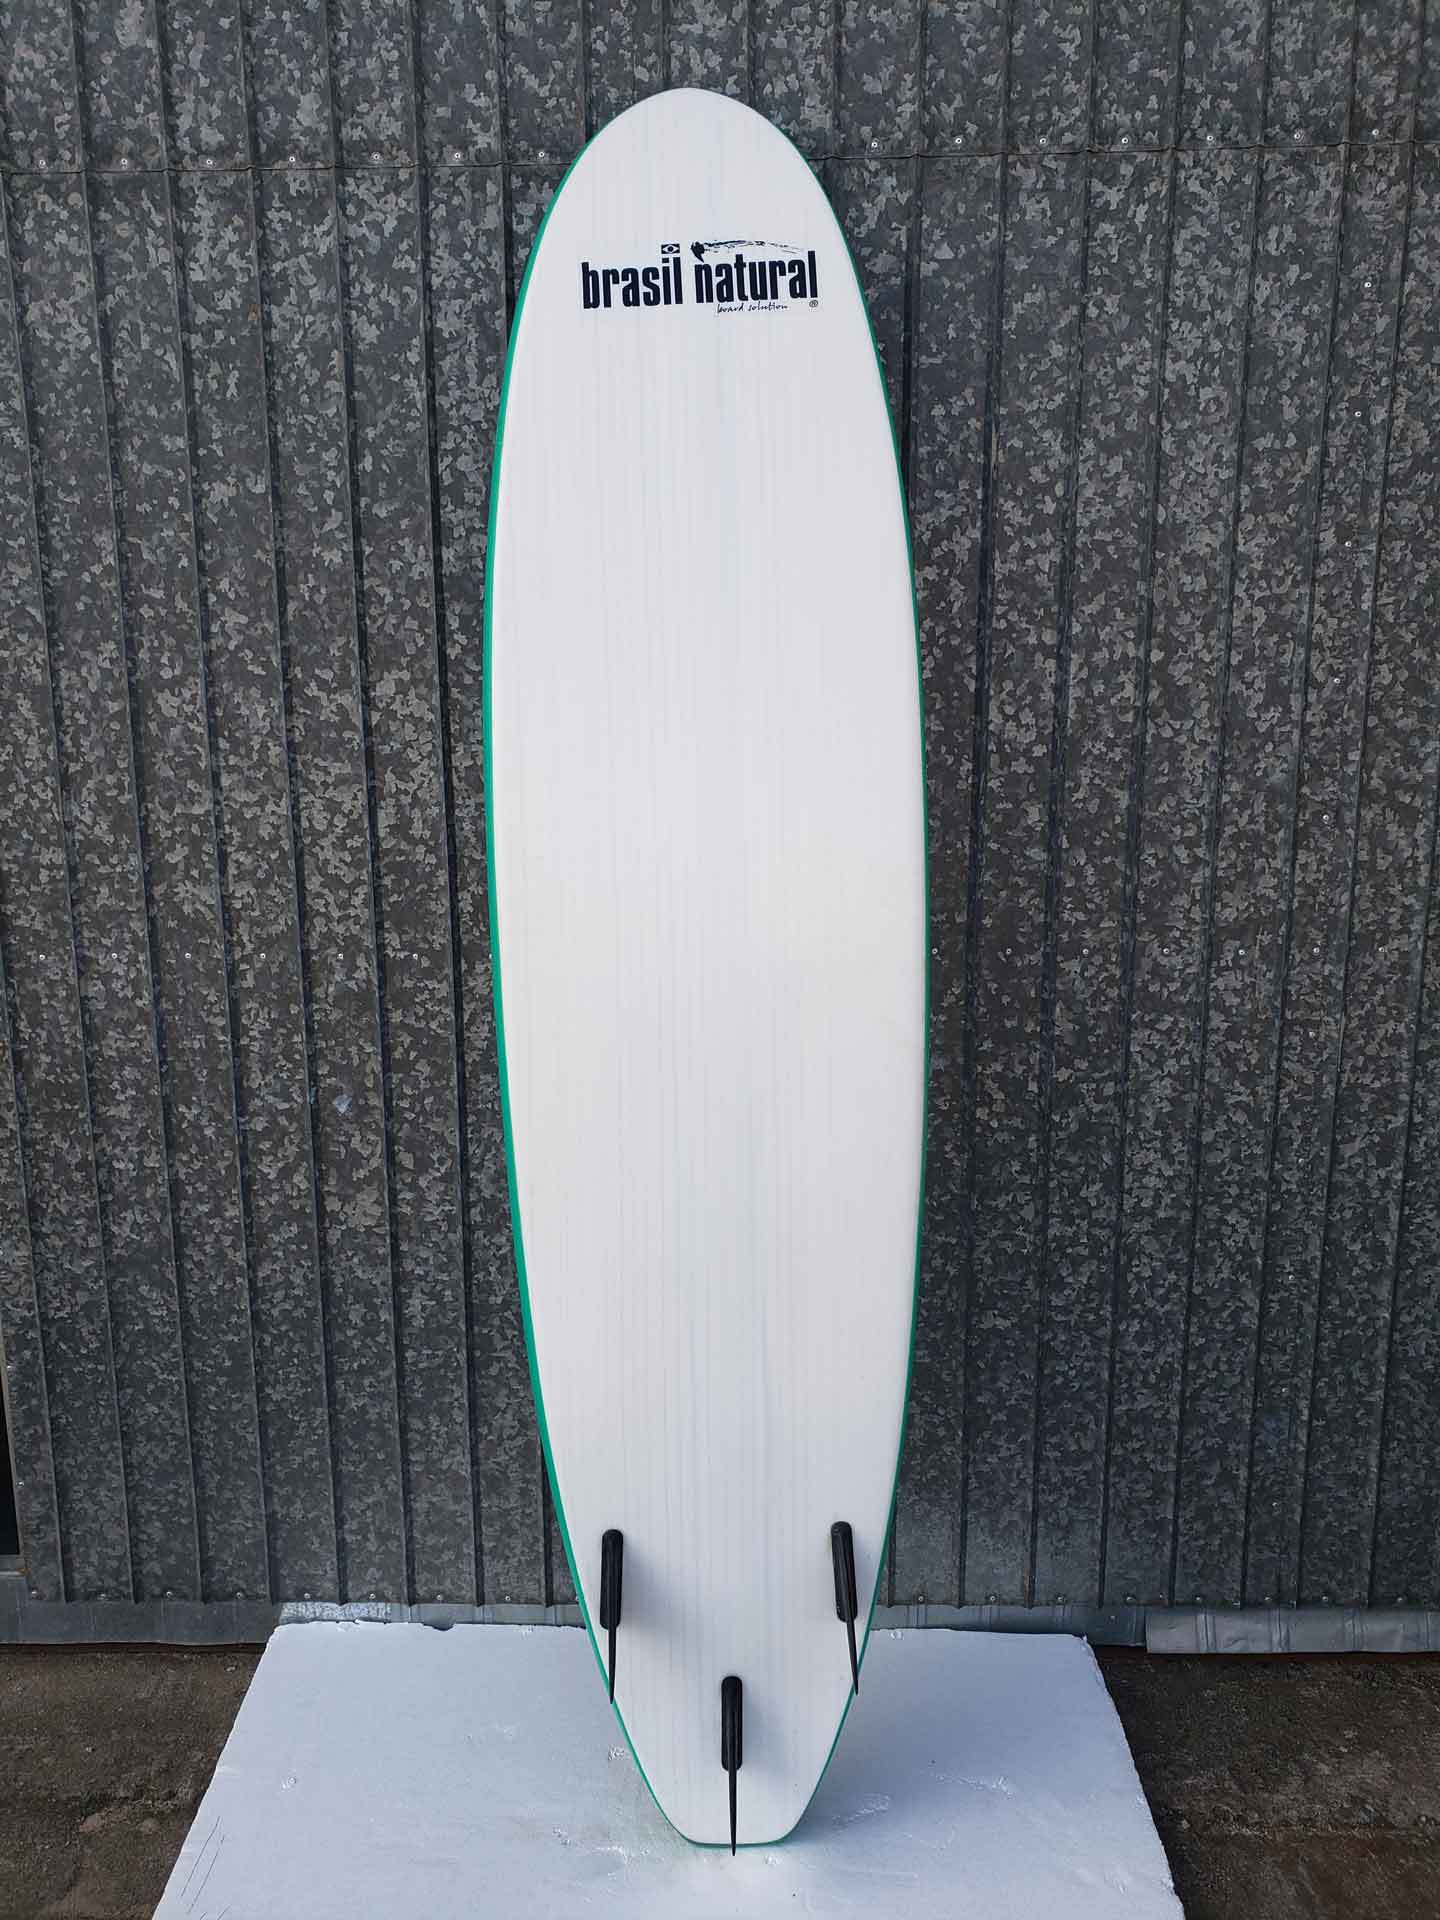 Prancha de surf FUN 7.2 + kit surf - outle 23